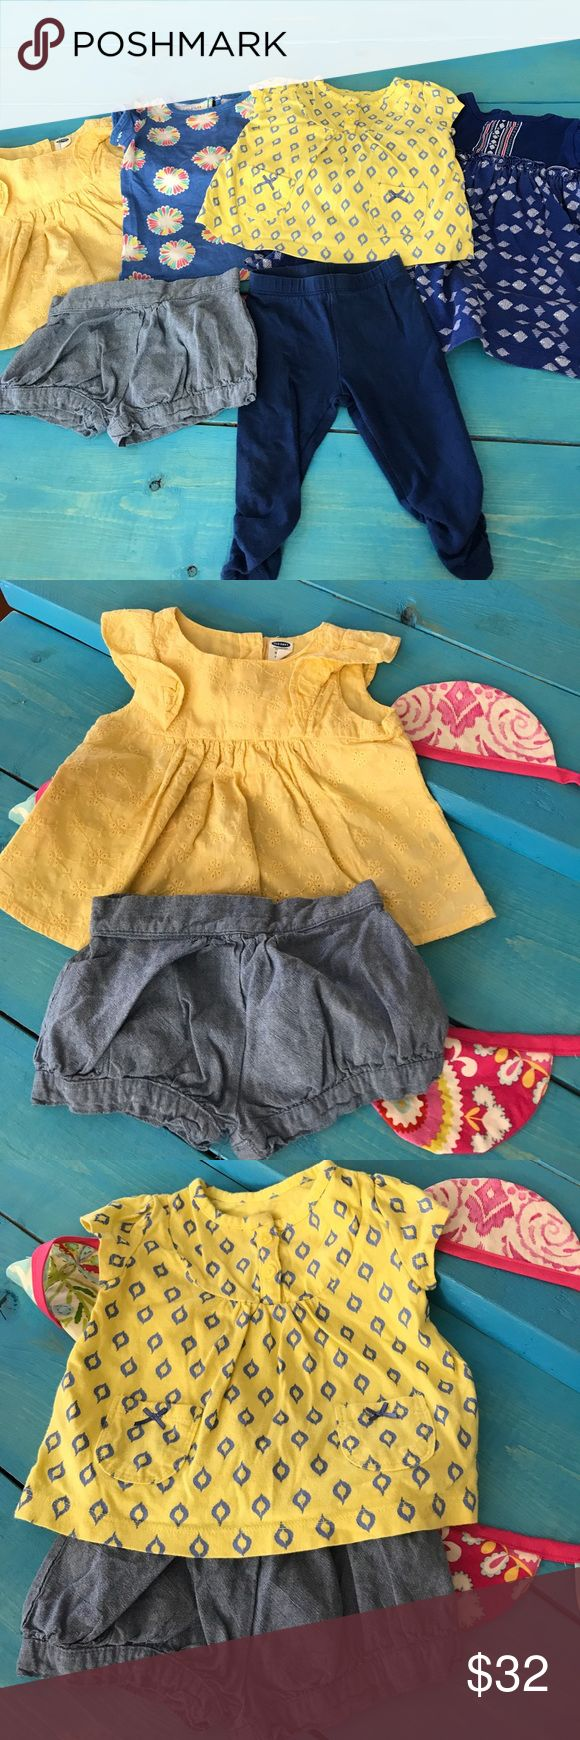 6 Piece Blue and Yellow 6 Month Mix n Match Yellow top with blue diamonds, pockets, buttons and bows is Carters. Blue tunic with Aztec print can be worn as a Dress with Bloomers or shirt with leggings from Carters. Chambray bloomer shorts are Carters. Bright yellow eyelet ruffle blouse is from Old Navy and buttons in the back. Blue gathered leggings are from 1989 Place. Periwinkle Floral tee buttons on back of neck and it's a Tommy Hilfiger. All EUC. No stains or holes. carters Matching Sets